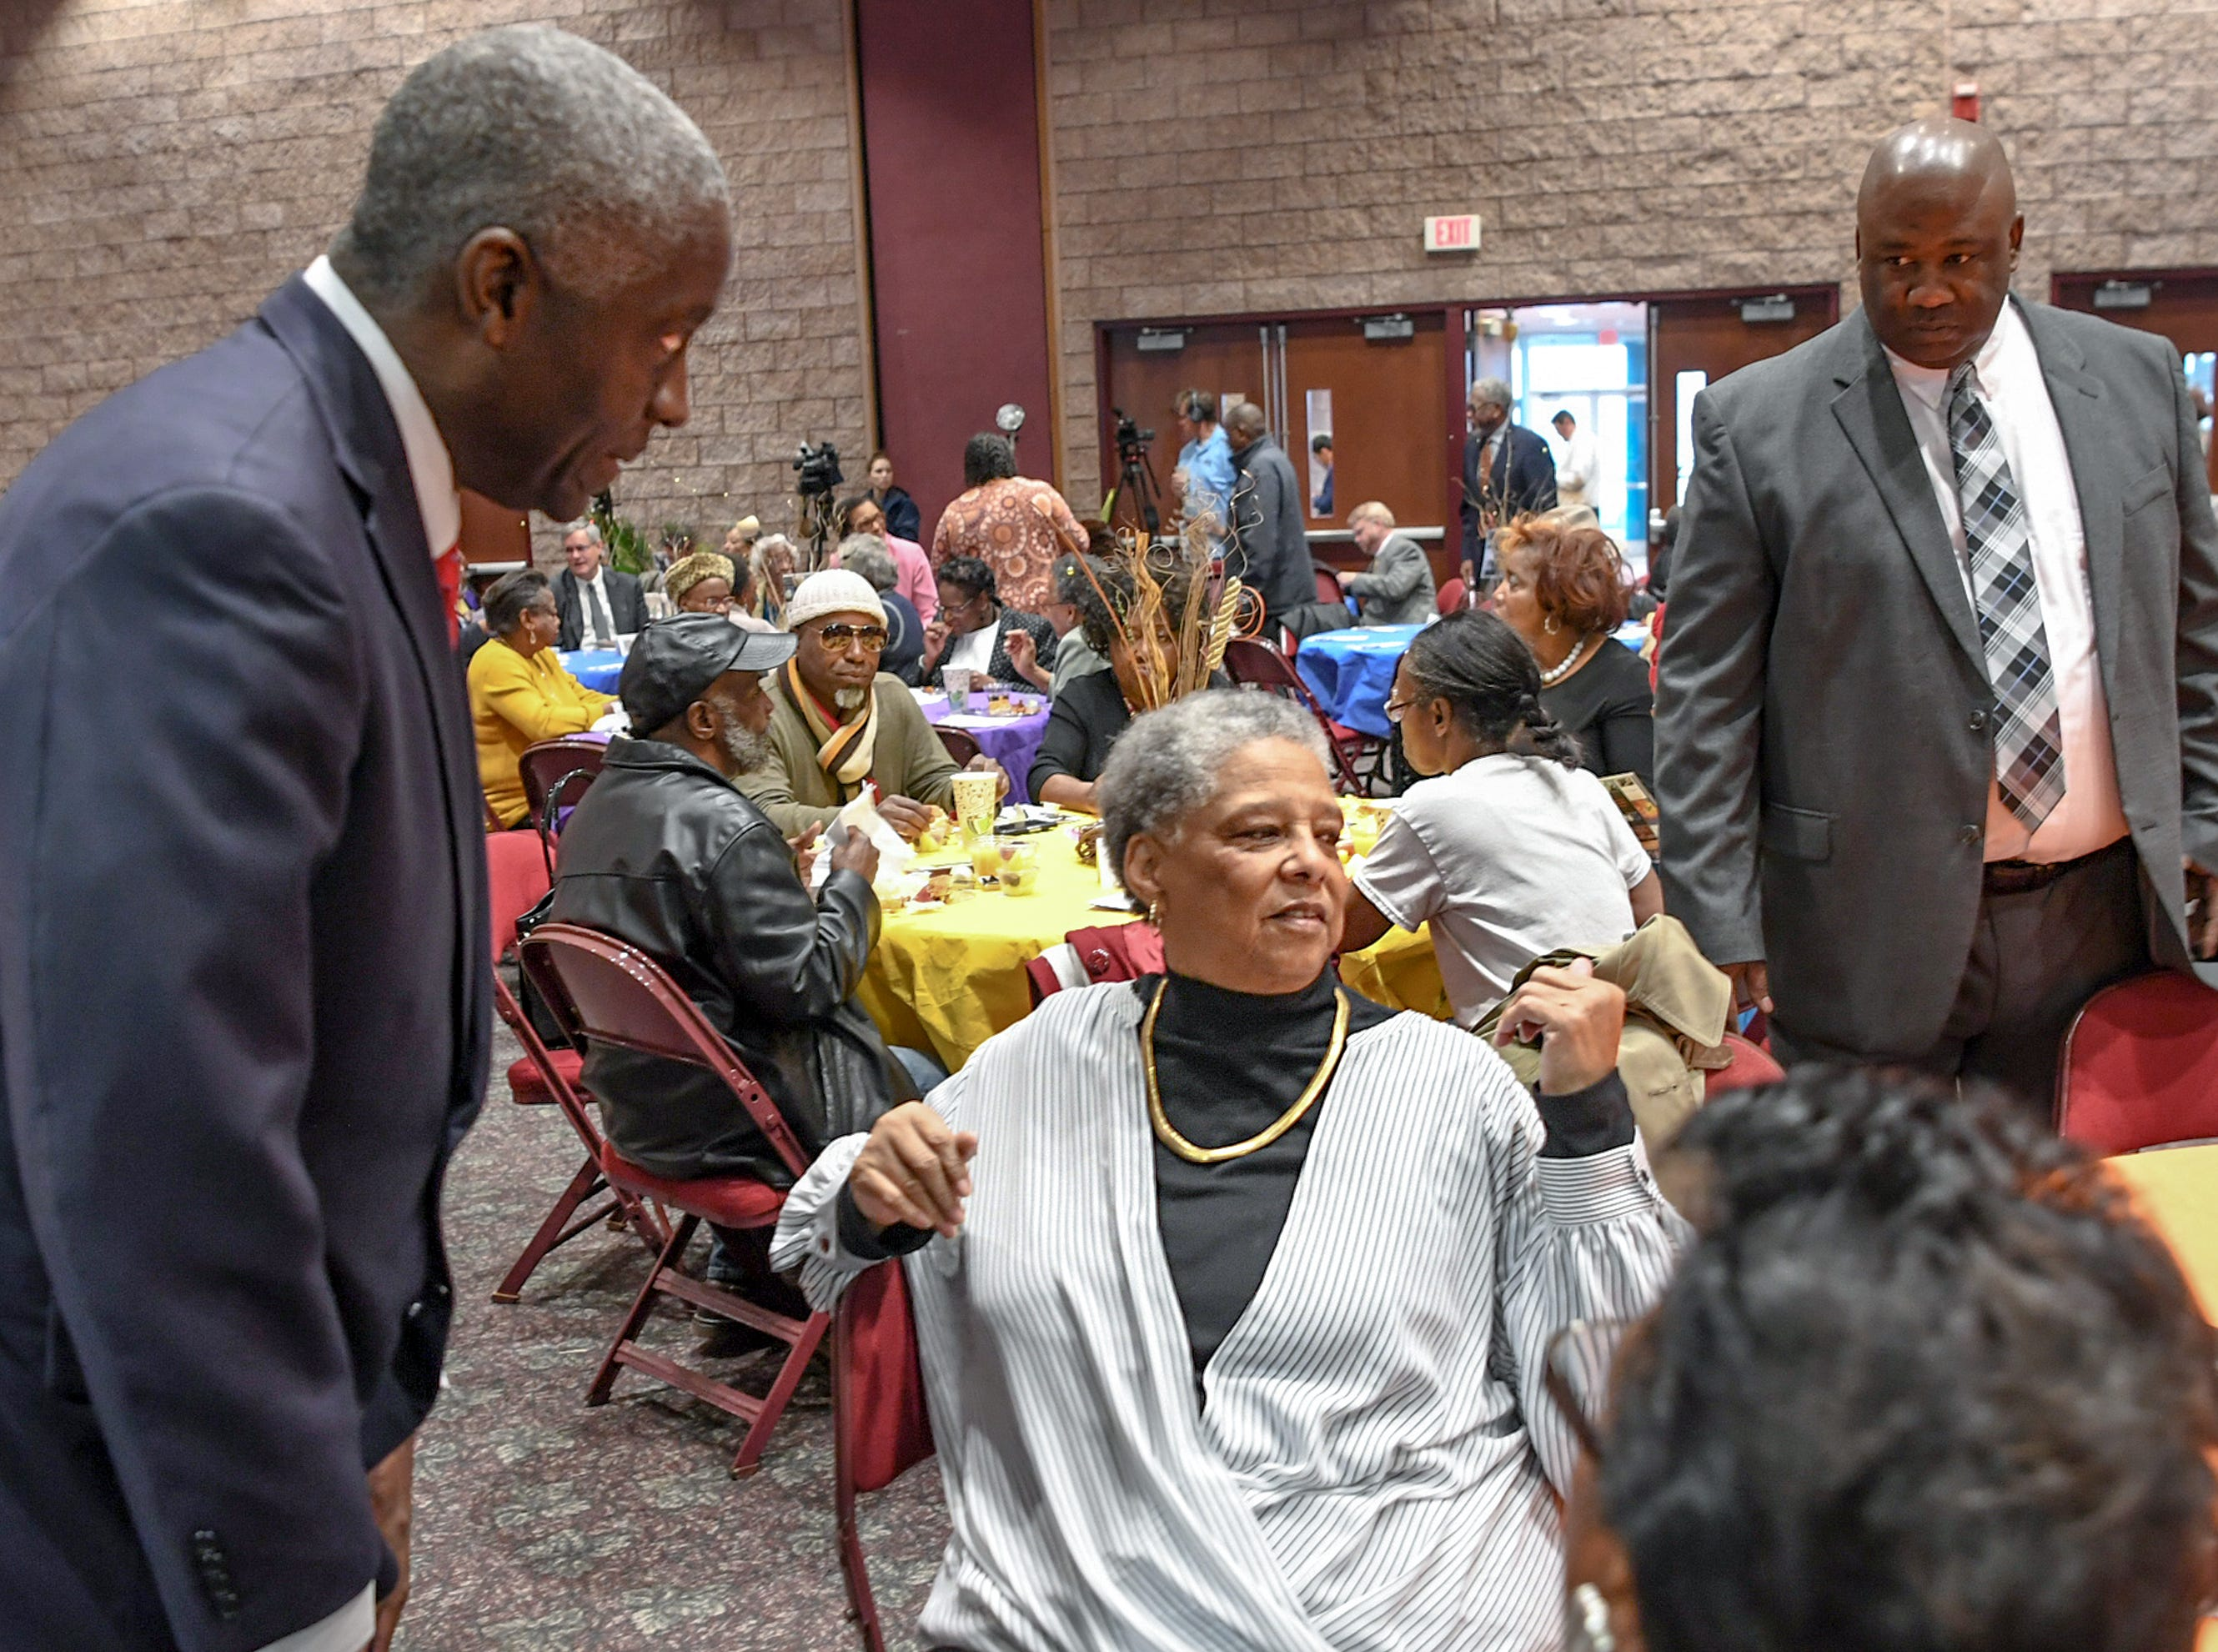 Mayor Terence Roberts, left, Gracie Floyd, and Gregory Floyd, right, before the Mayor's Martin Luther King Jr Breakfast in the Anderson Civic Center Friday, January 18, 2019. Gregory Floyd accepted the Trailblazer award in honor of his late father William A. Floyd, who passed away in 1999. William Floyd served on the Anderson County Council chairman.